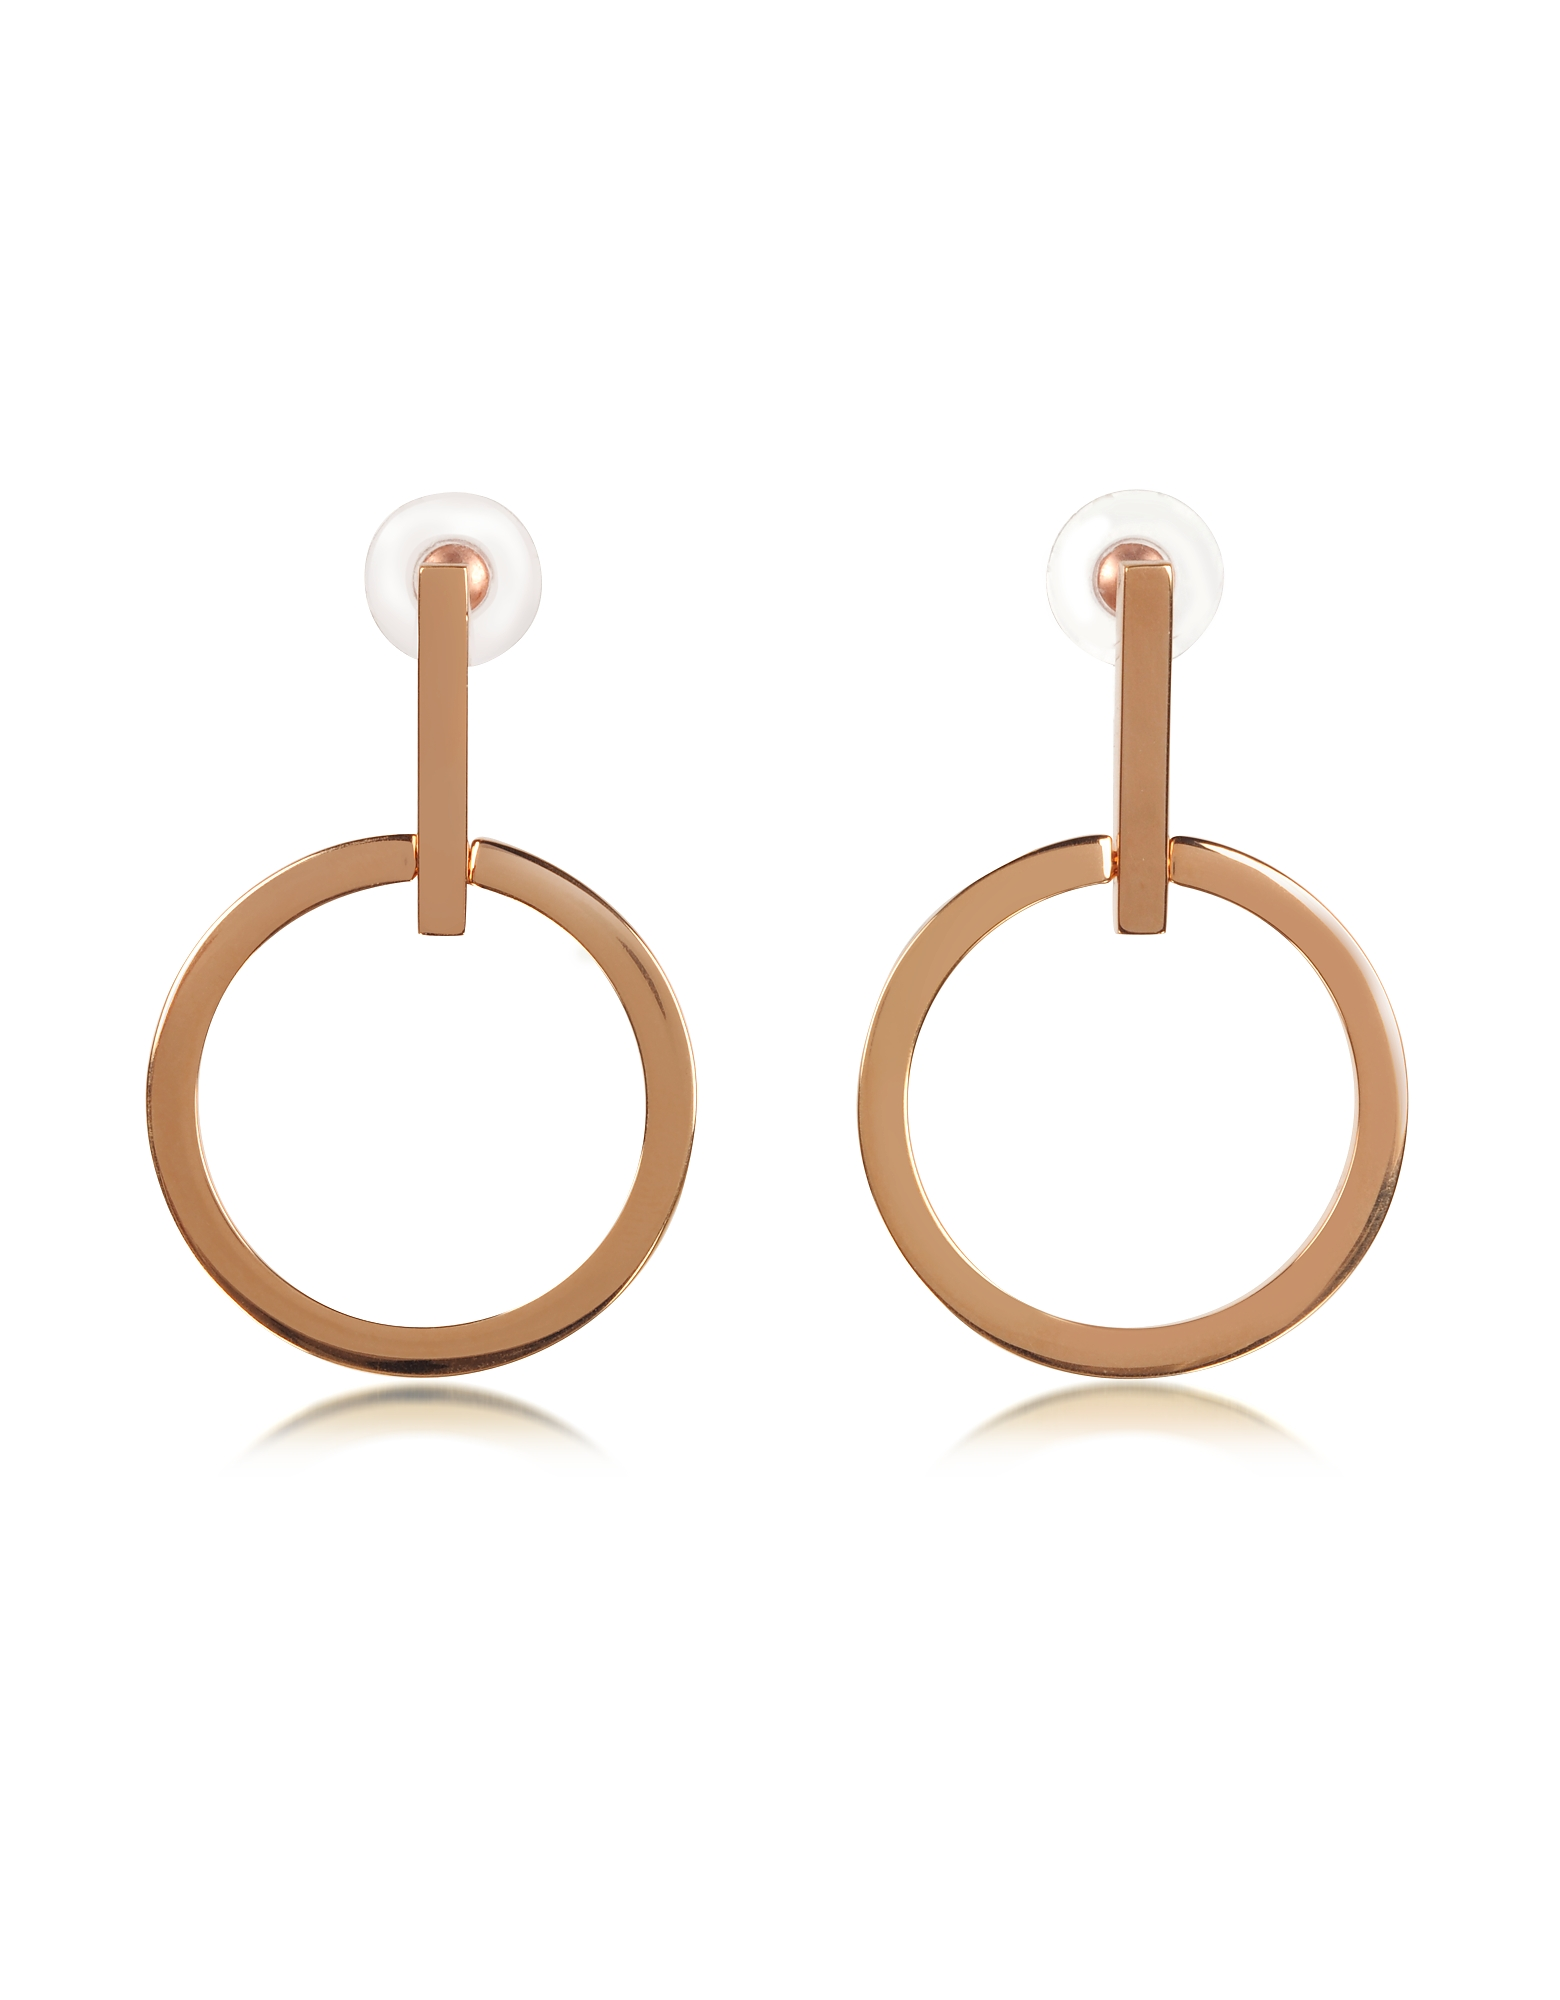 Vita Fede Designer Earrings, Antonia Rose Gold Tone Hoop Earrings